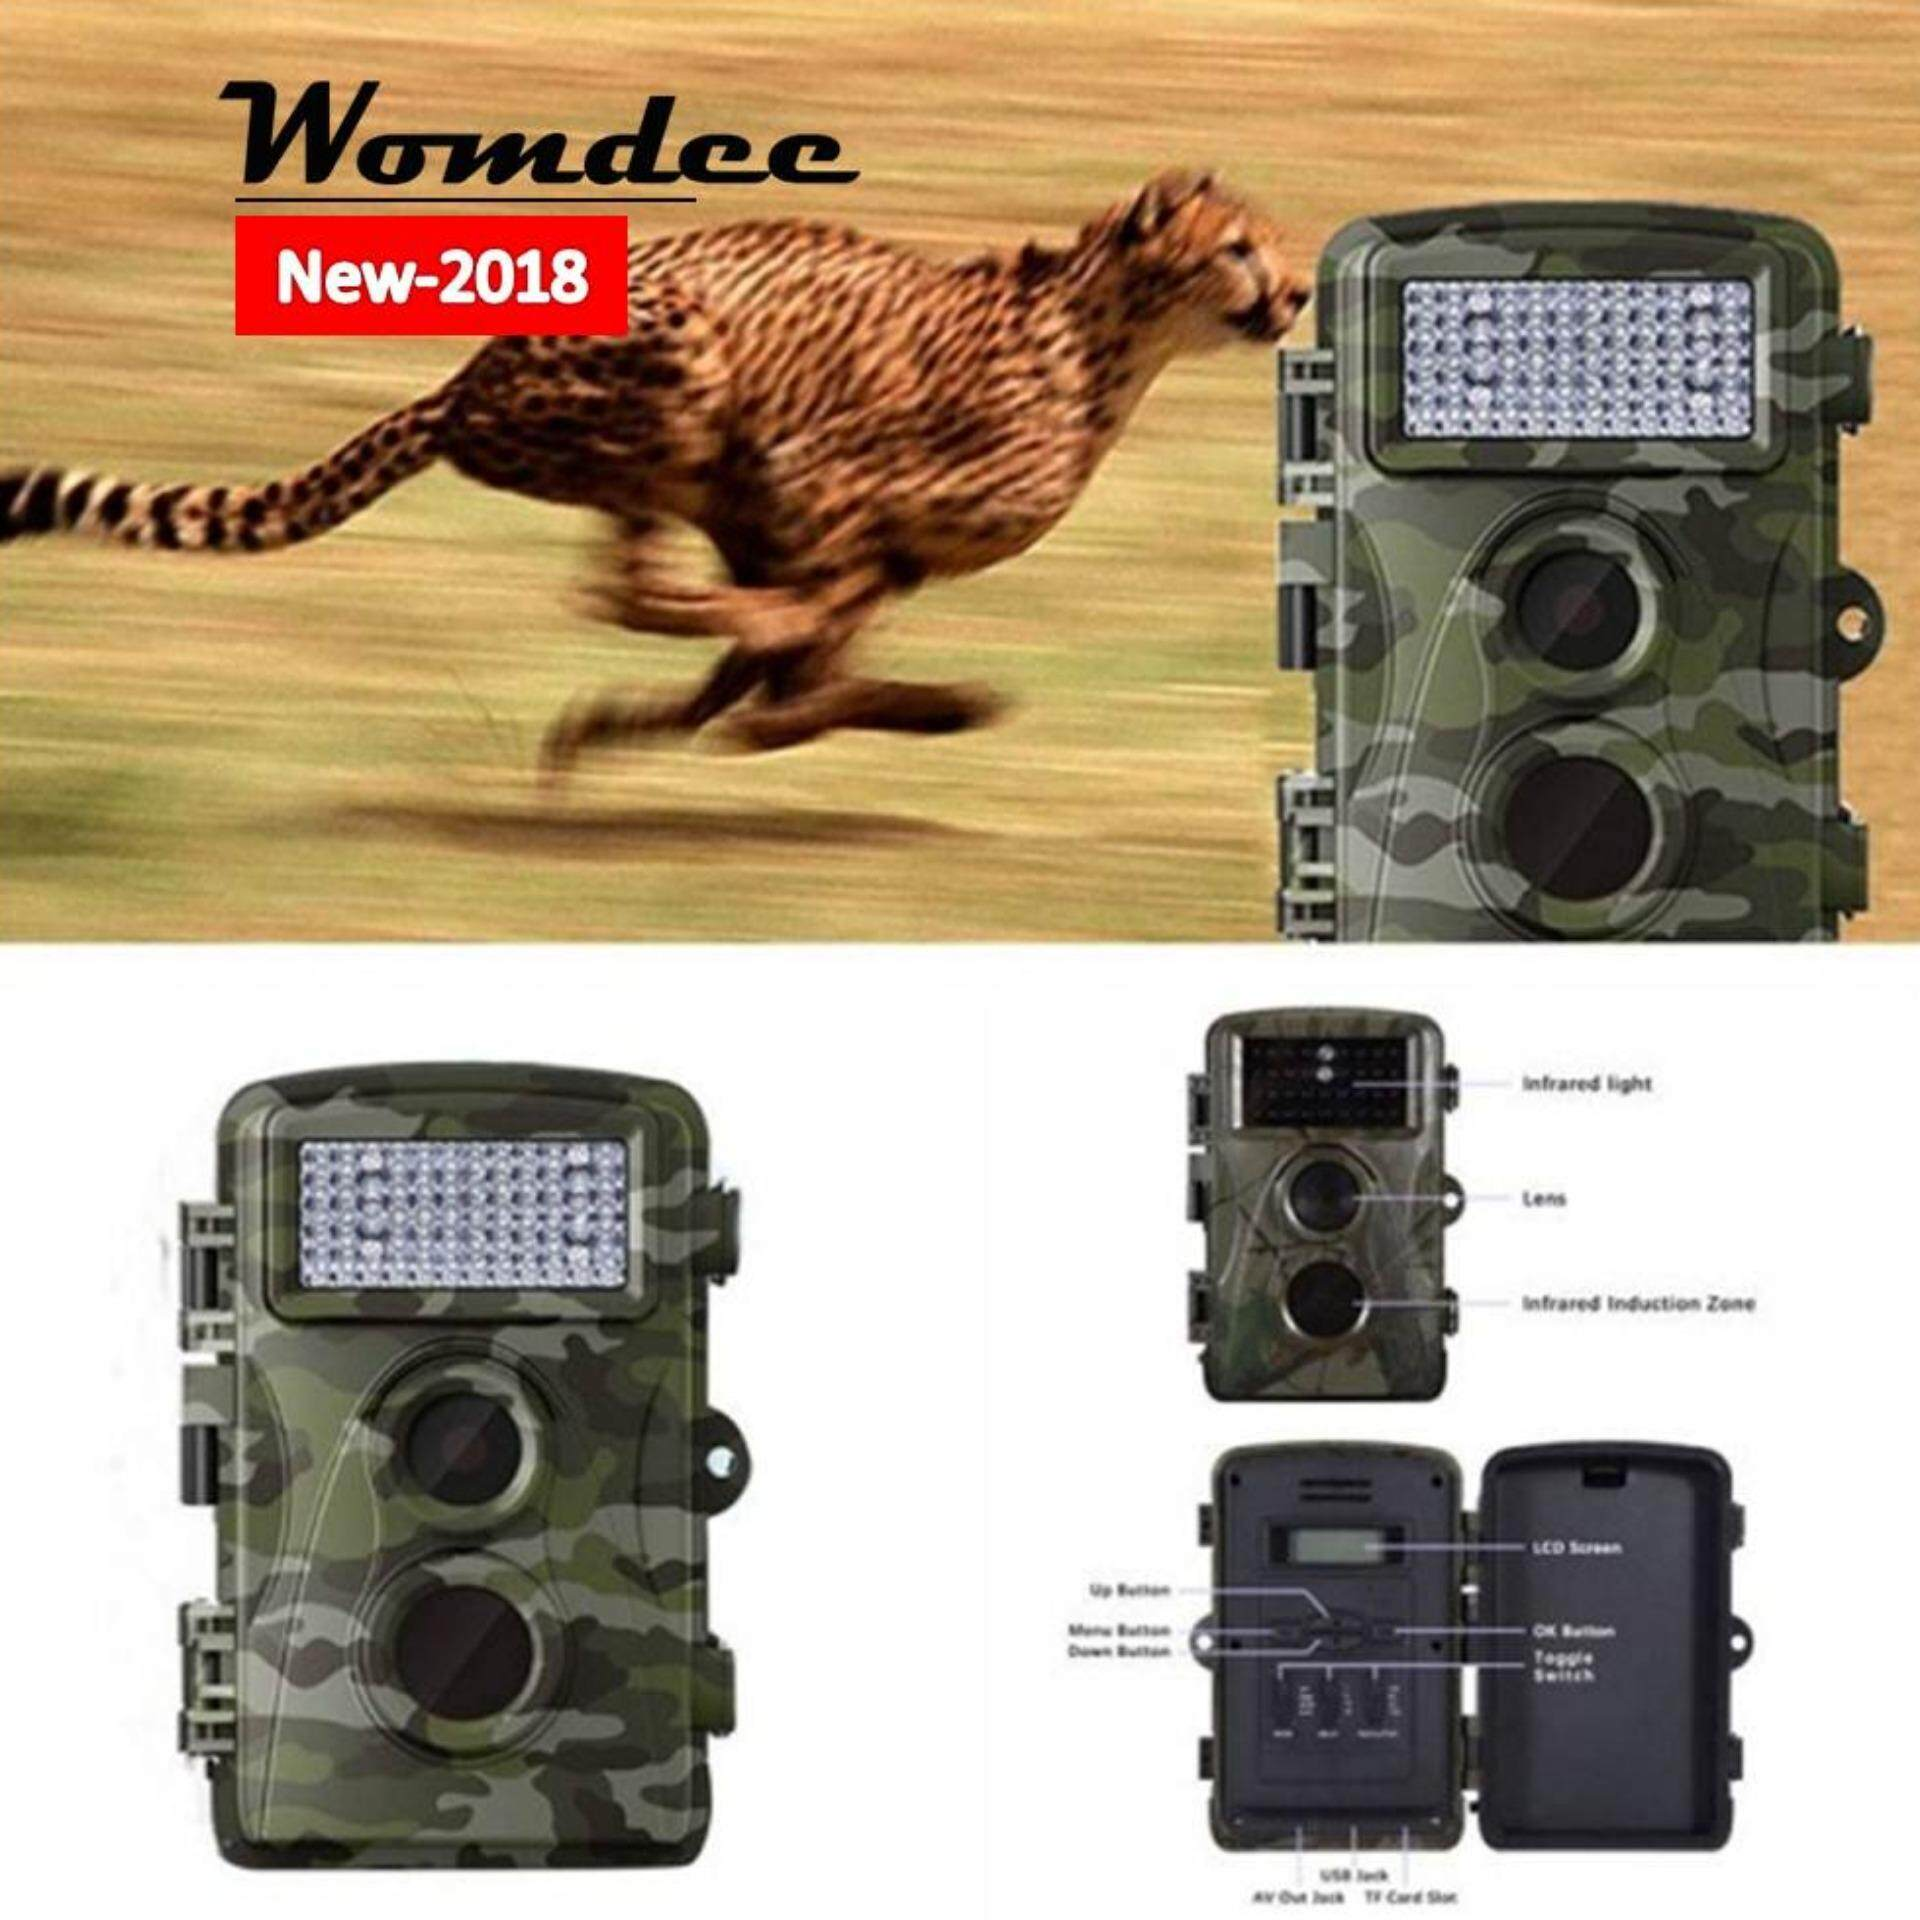 Womdee A Set Of[12] Camera For Animals - Intl By Womdee.